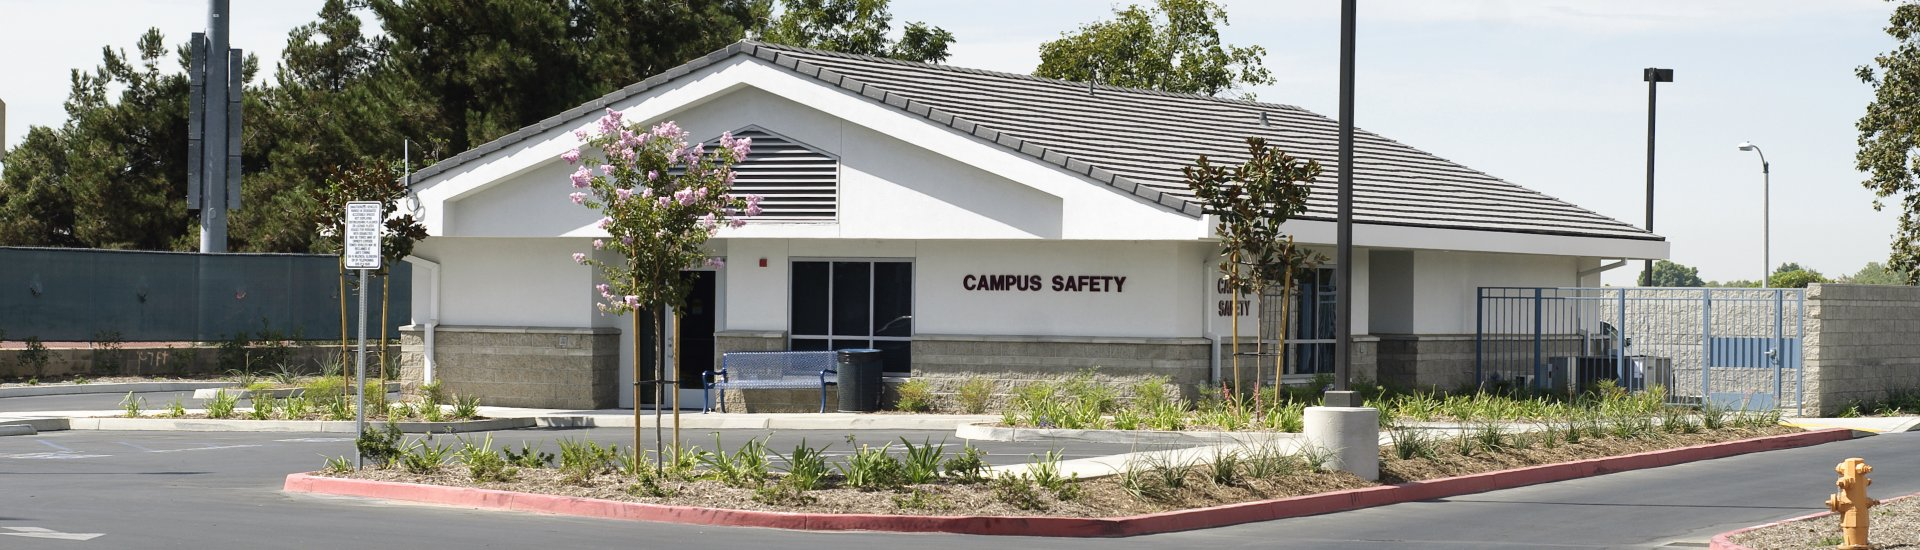 Campus Safety building